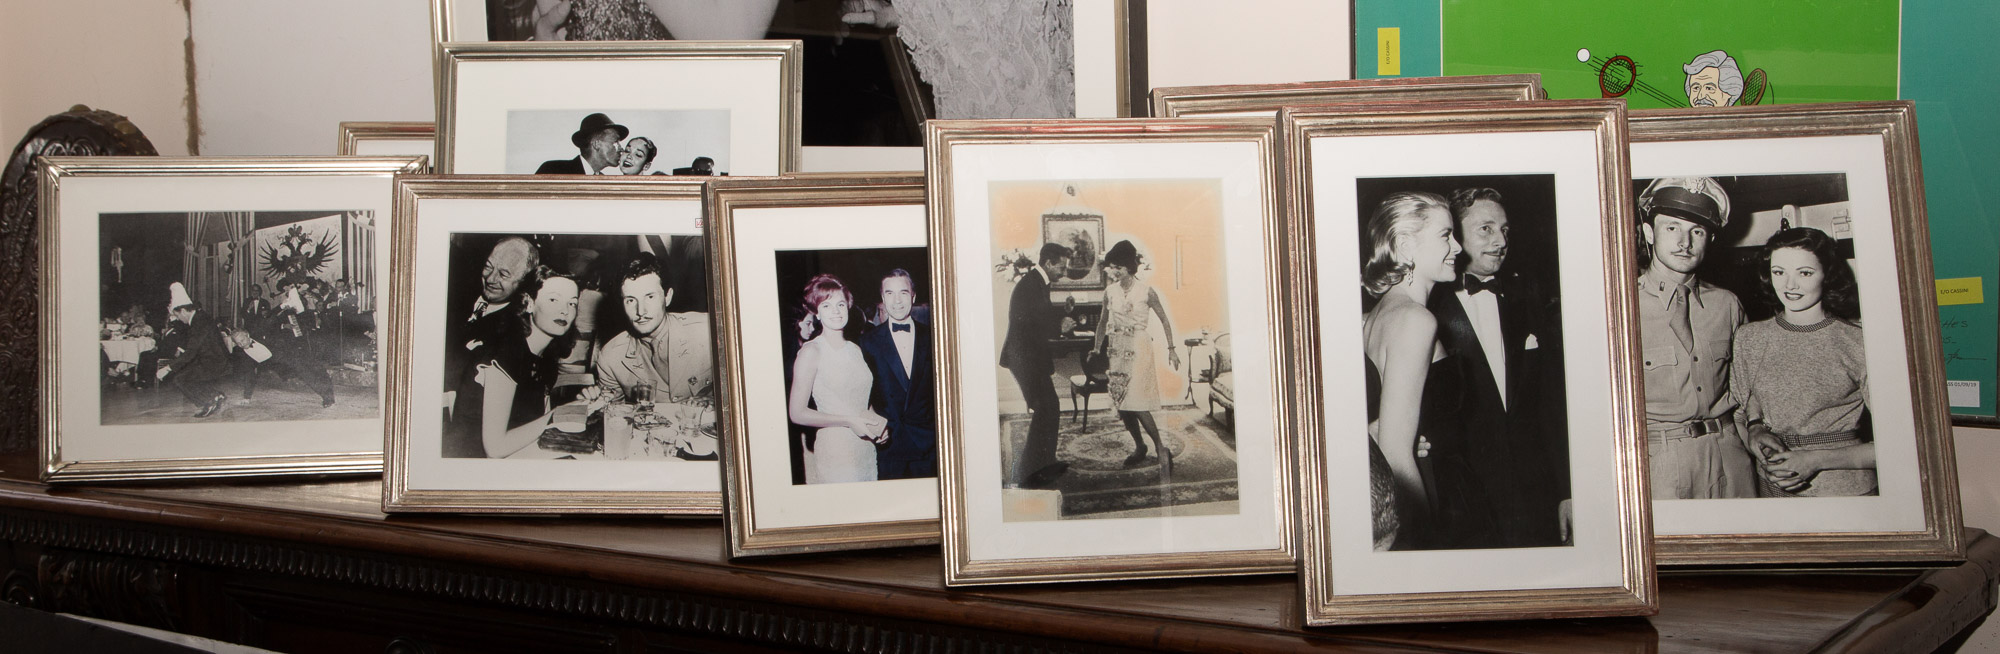 Lot image - [CASSINI-PHOTOGRAPHS]  Group of approximately twenty-two framed photographs depicting Oleg Cassini with the Kennedys, Grace Kelly and others.